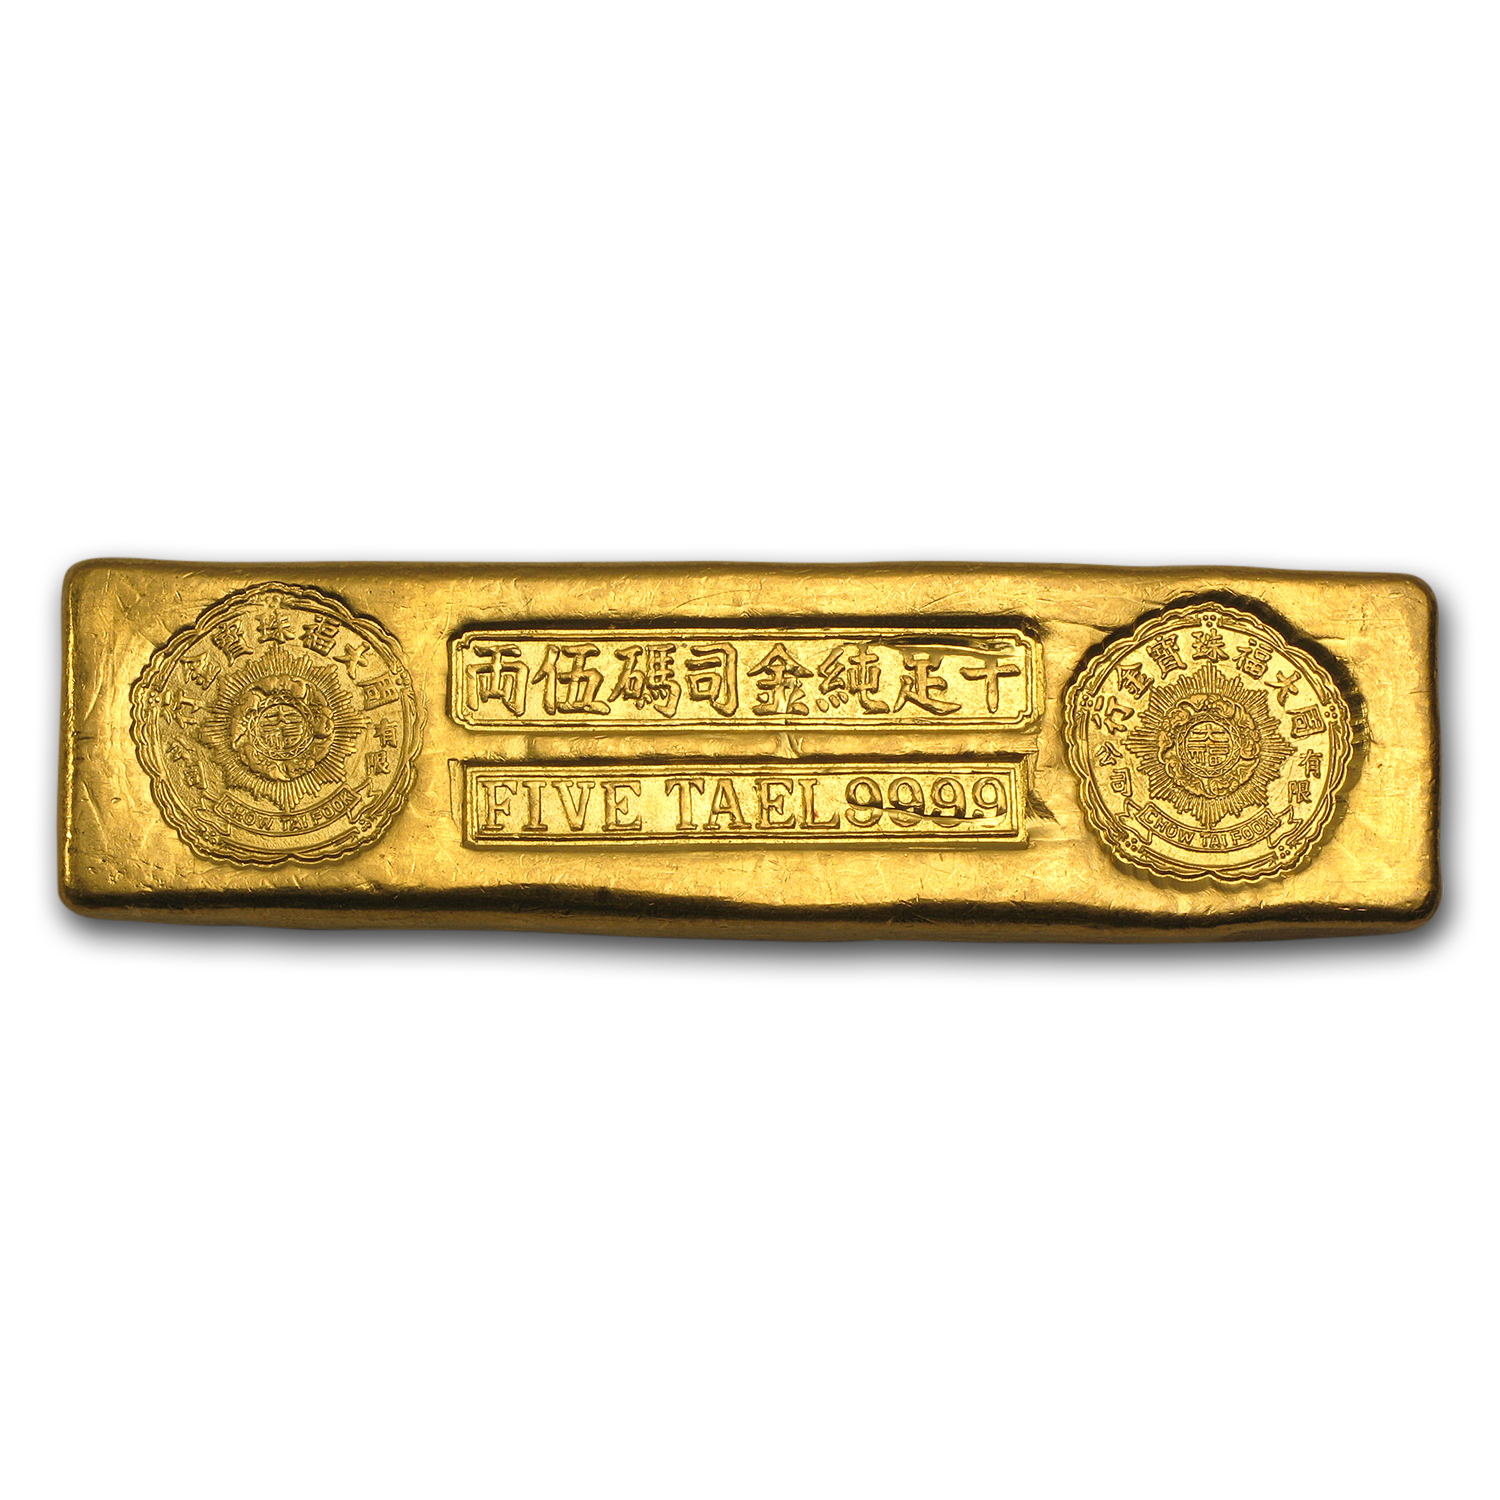 5 Tael Gold Bars - Chinese Biscuit (6.01 oz)